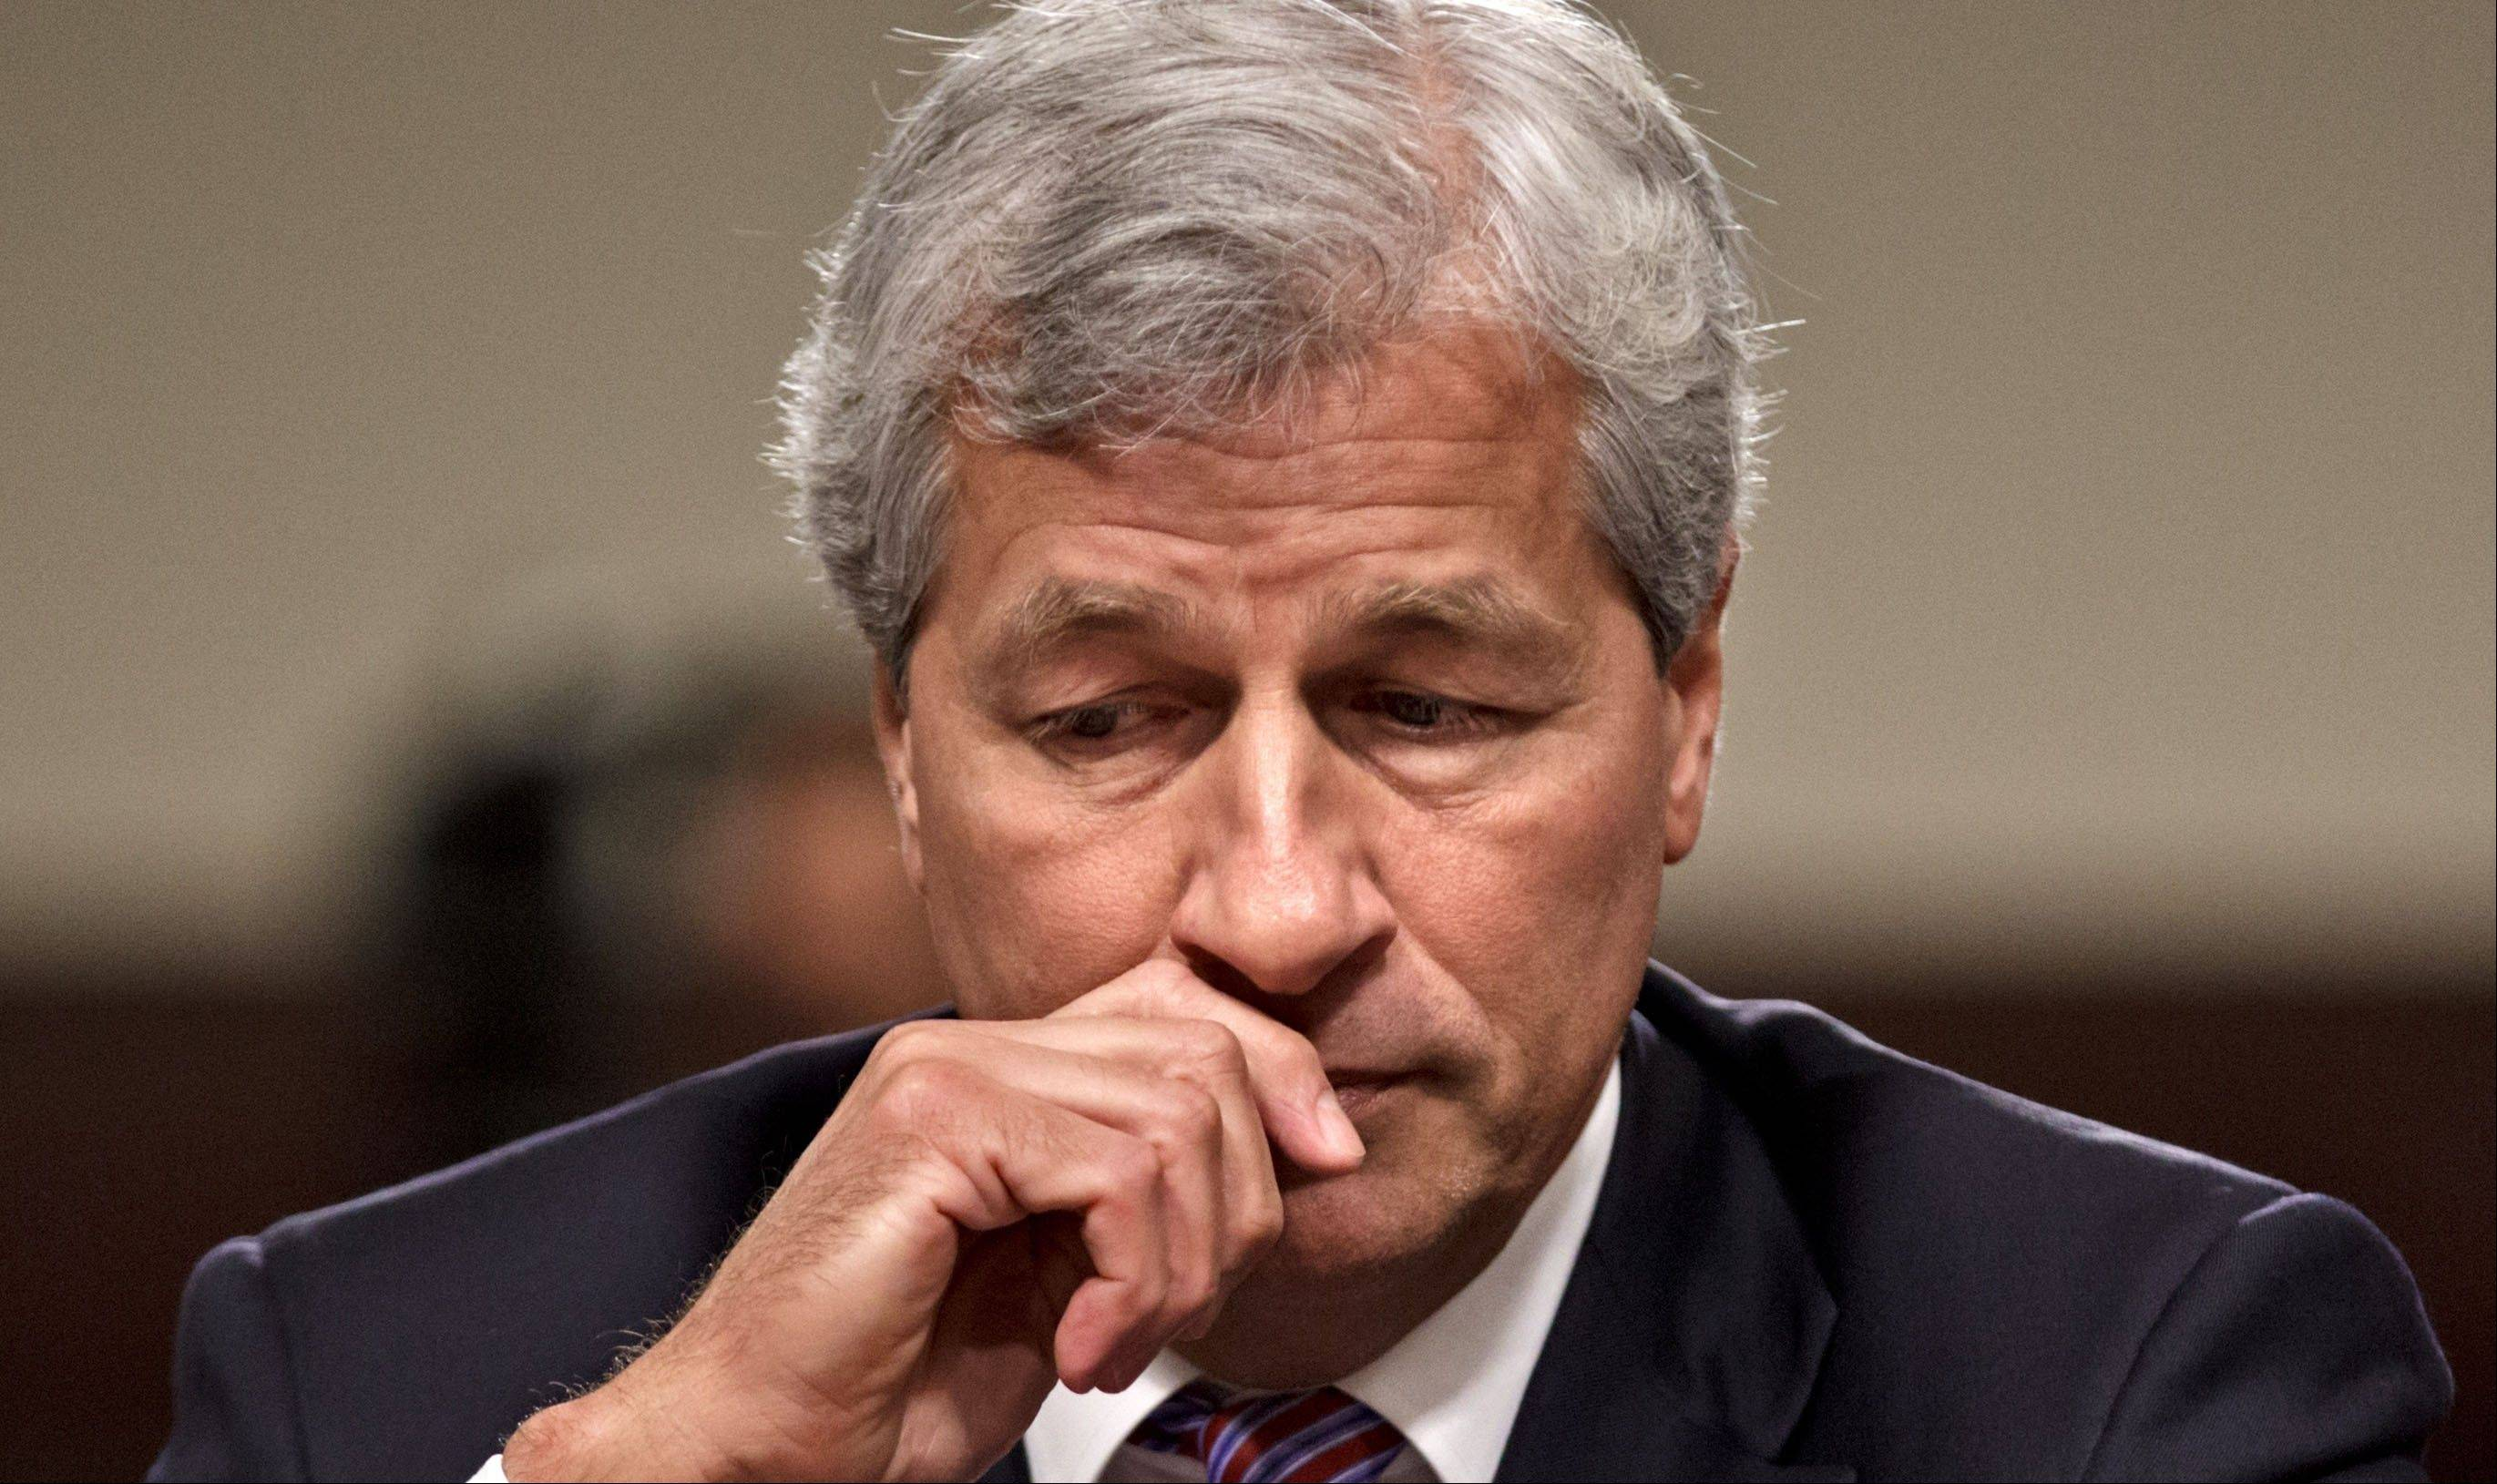 In this Wednesday, June 13, 2012, photo, JPMorgan Chase CEO Jamie Dimon testifies on Capitol Hill in Washington. Dimon has said JPMorgan is undergoing �extensive changes� to its business practices, and that regulatory compliance is its top priority.